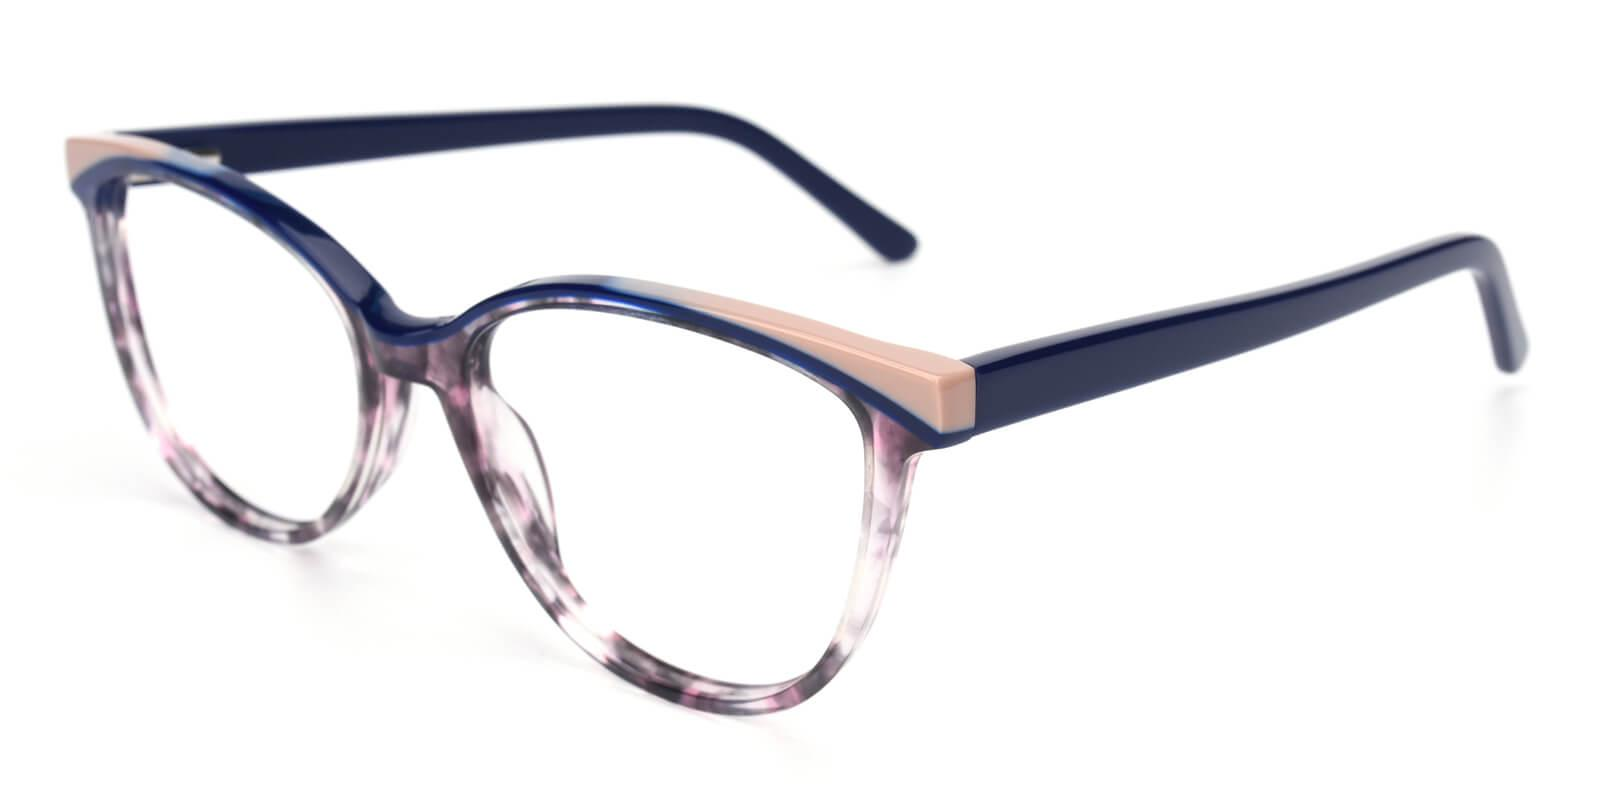 Cynthialy-Blue-Oval / Cat-Acetate-Eyeglasses-additional1